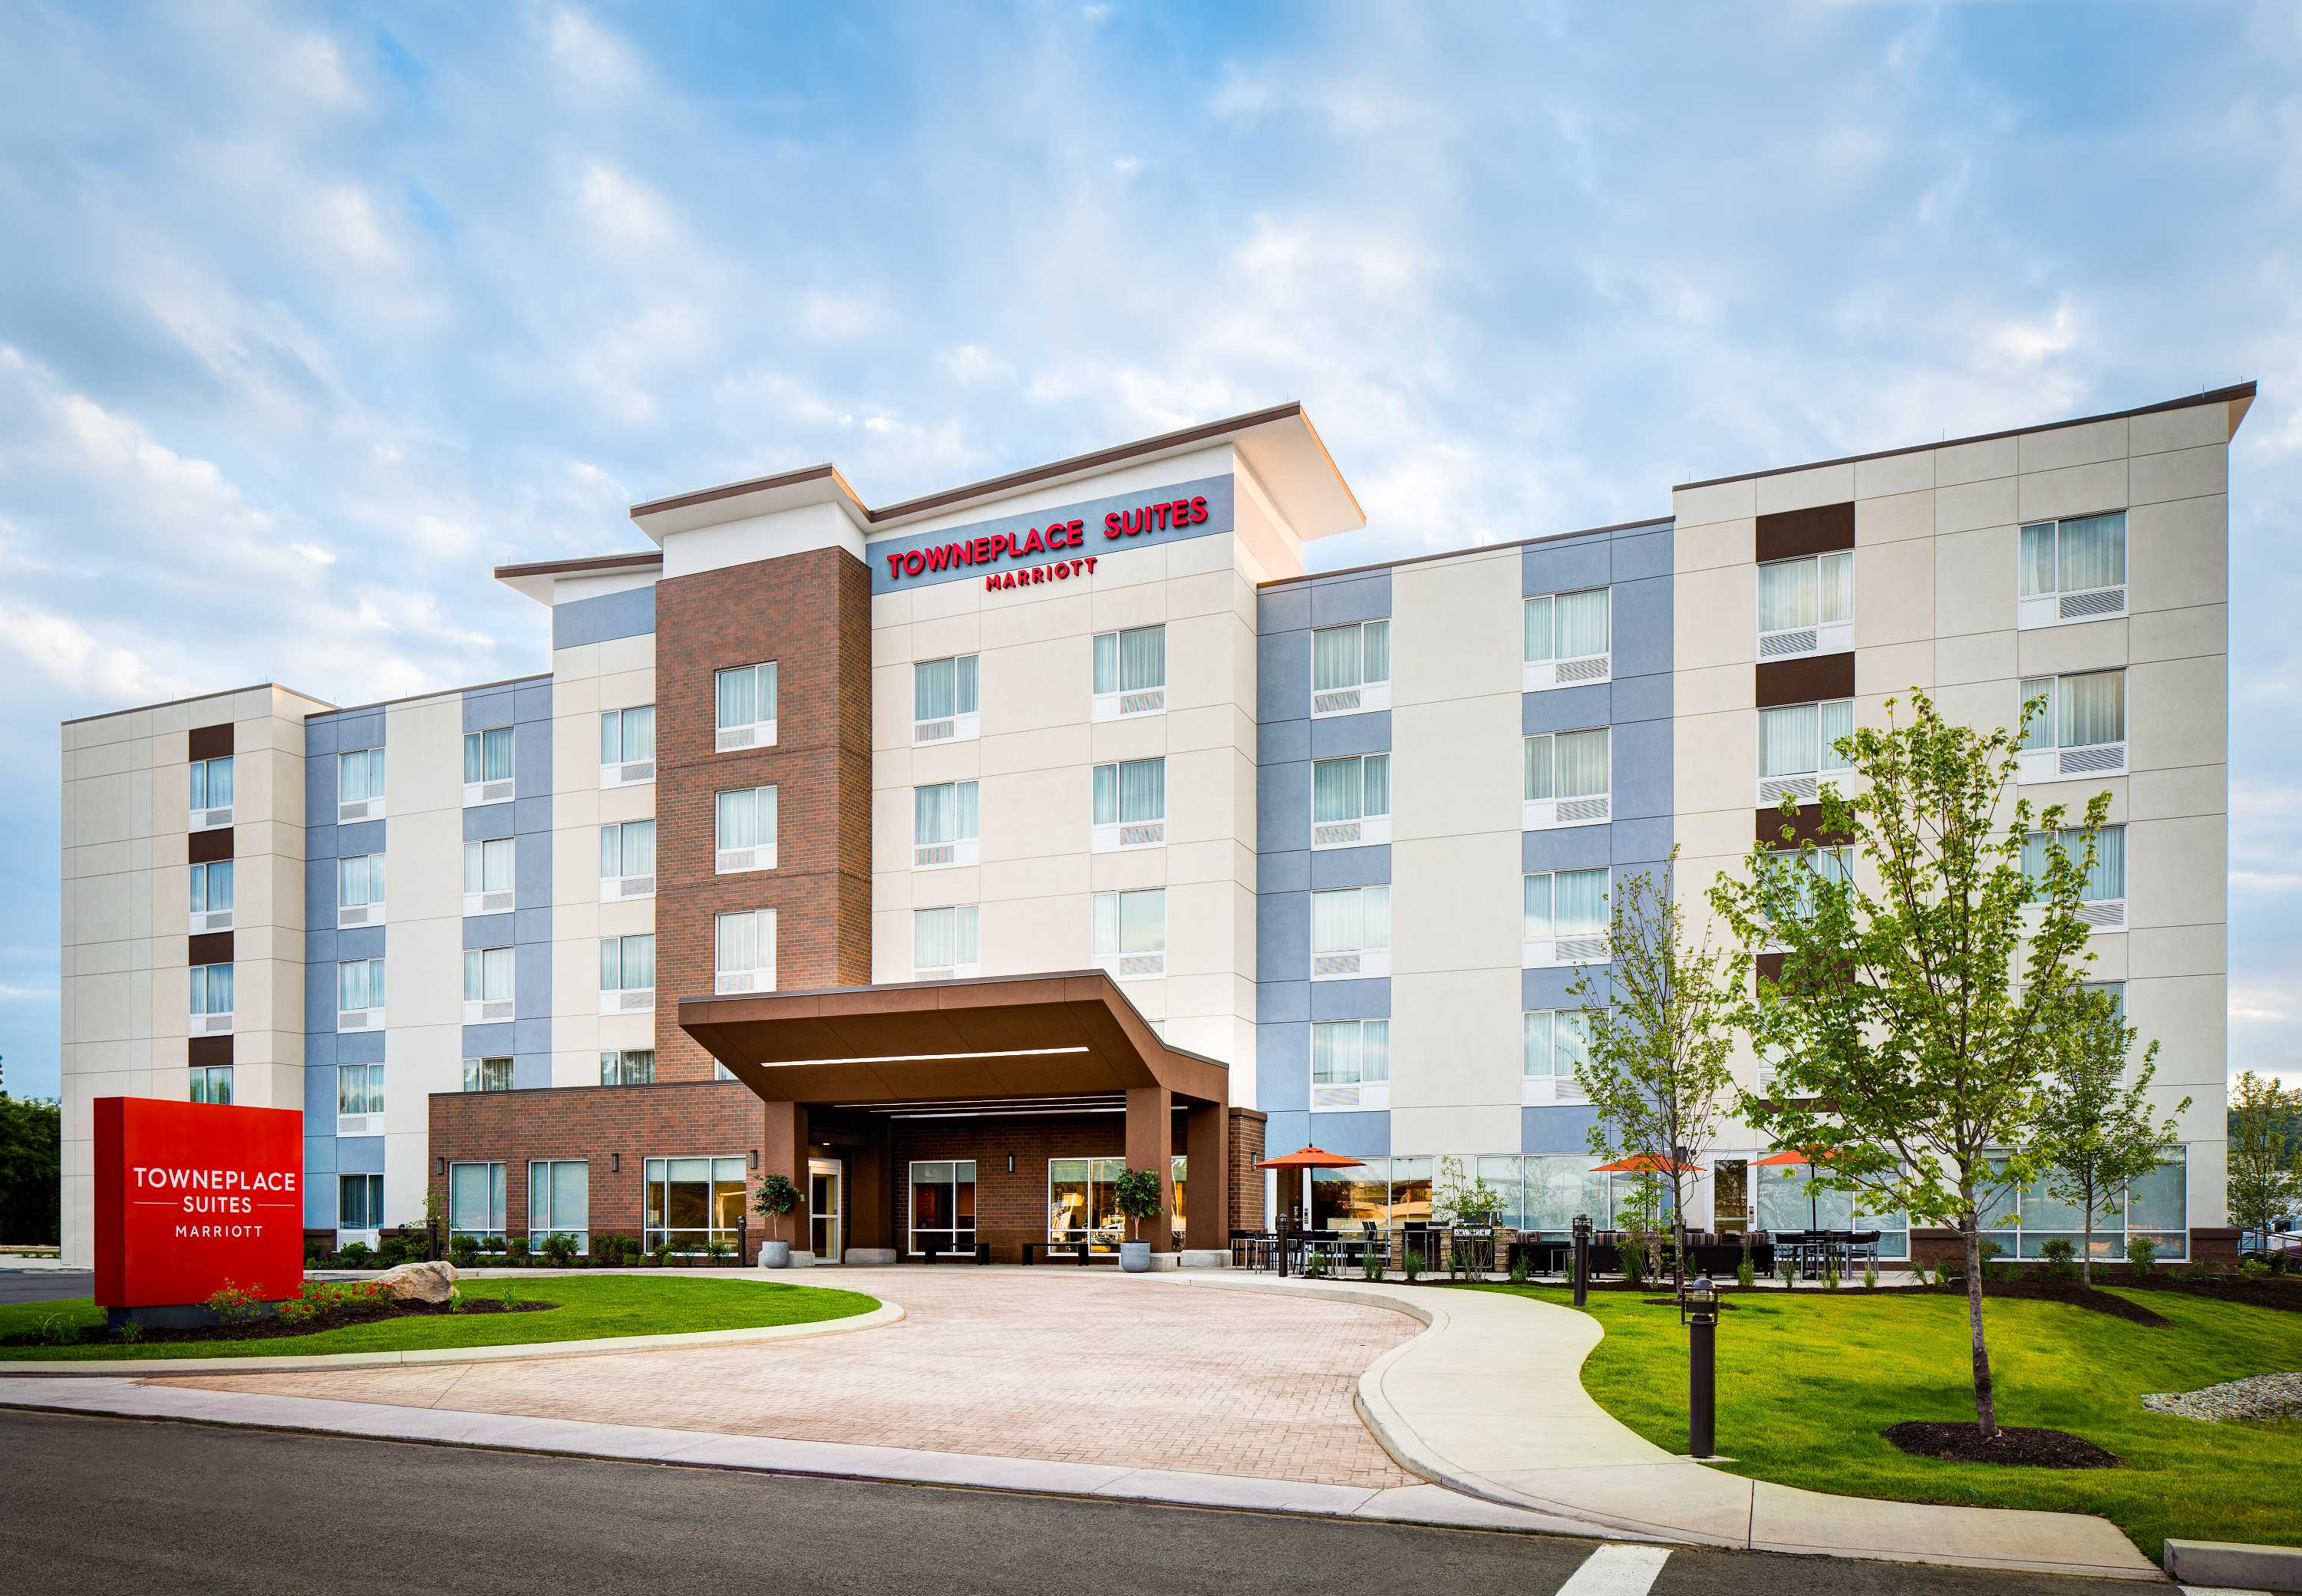 TownePlace Suites by Marriott Mansfield Ontario image 0